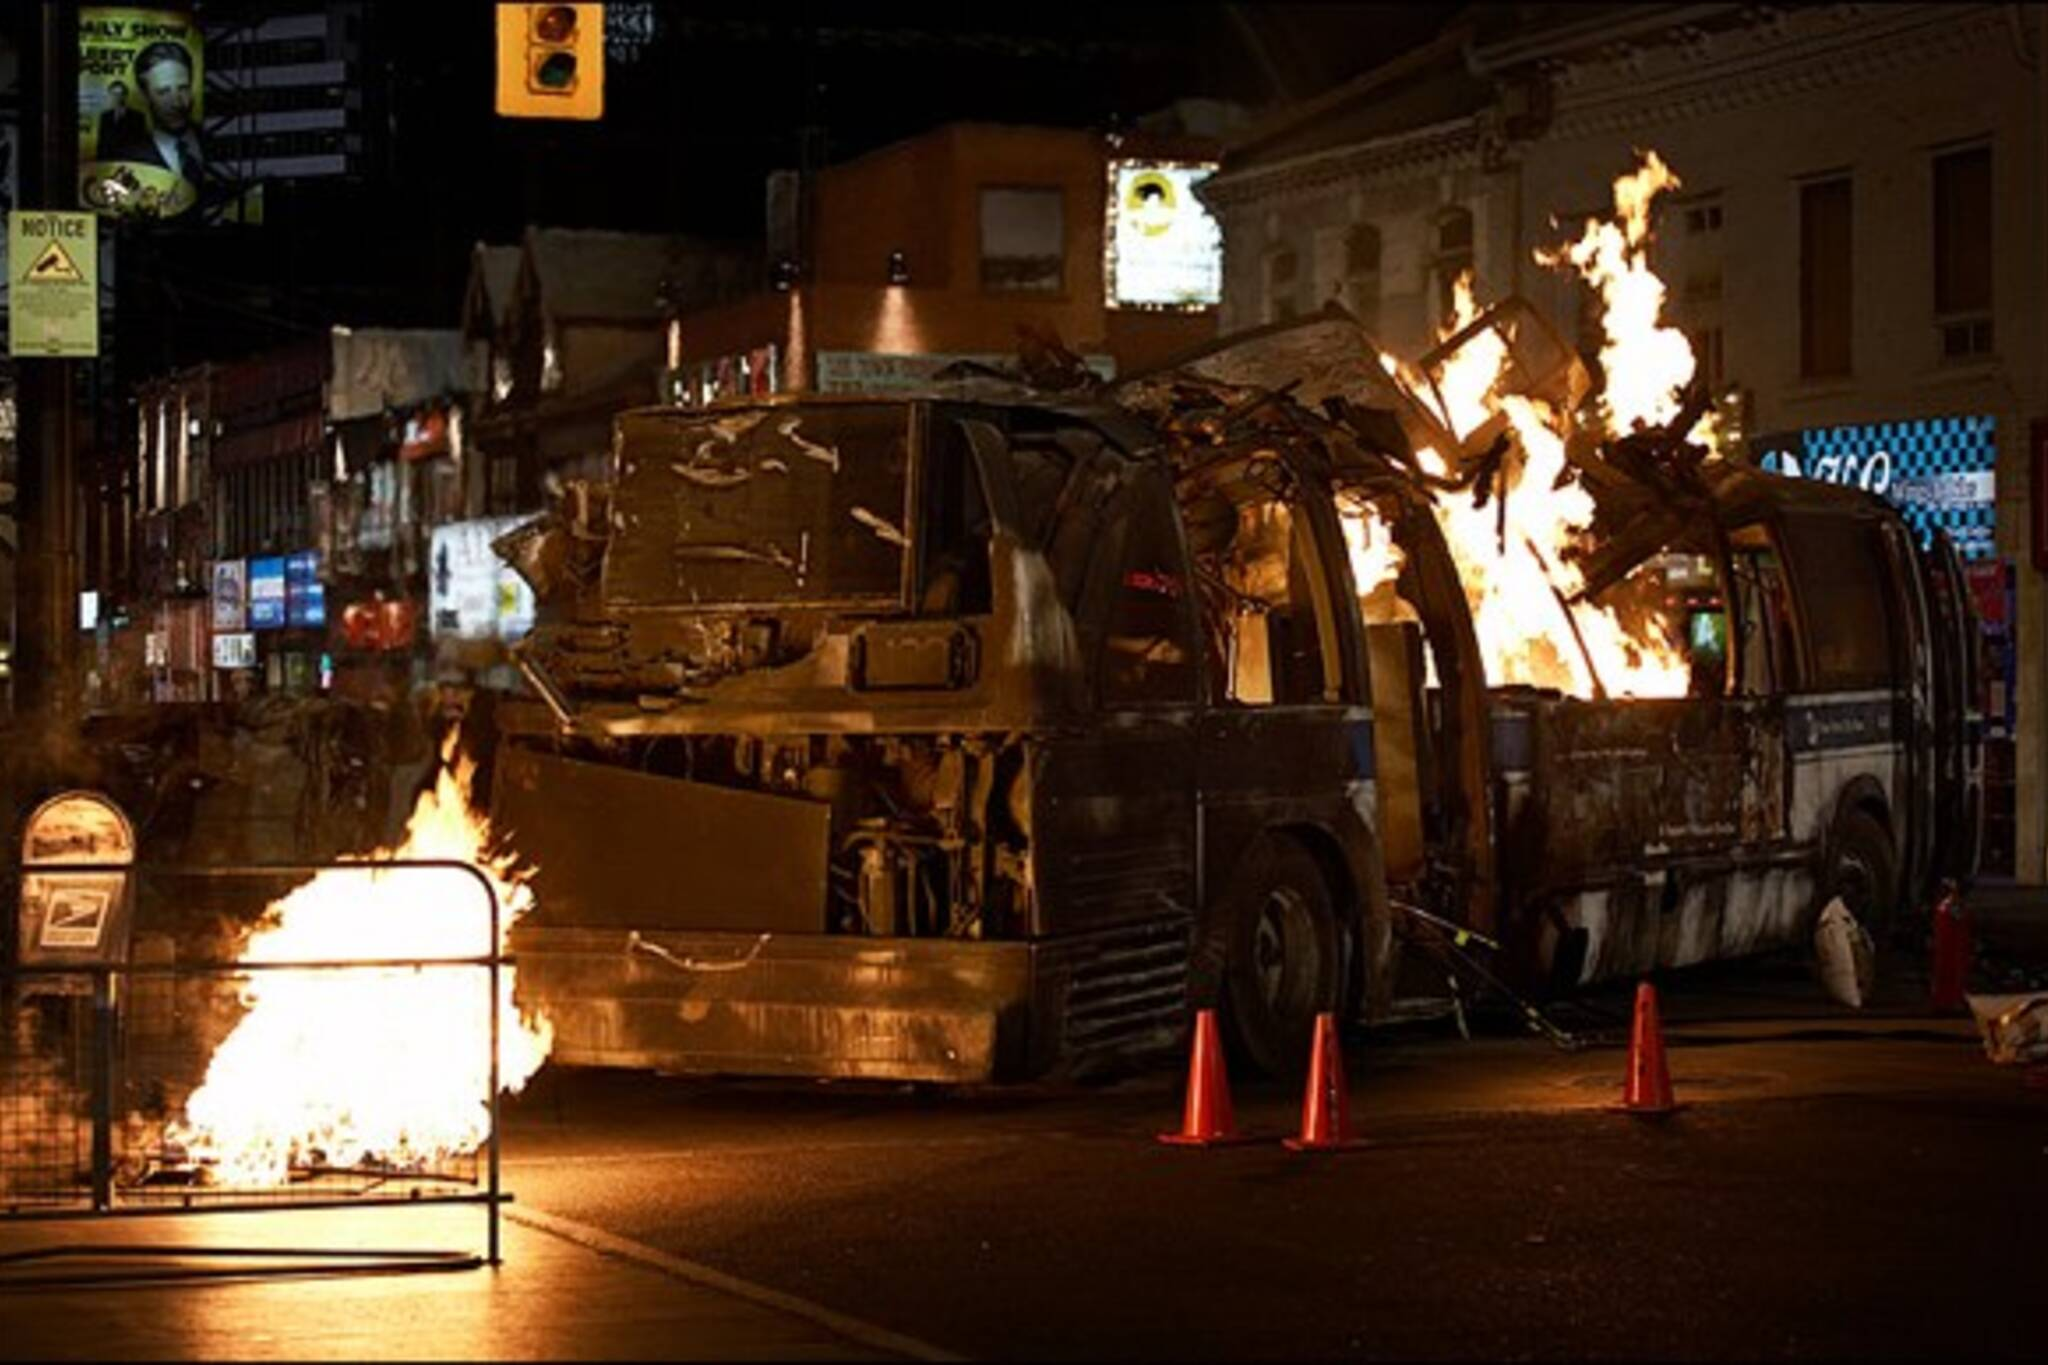 Toronto's Film Scene Burns Up in 2007